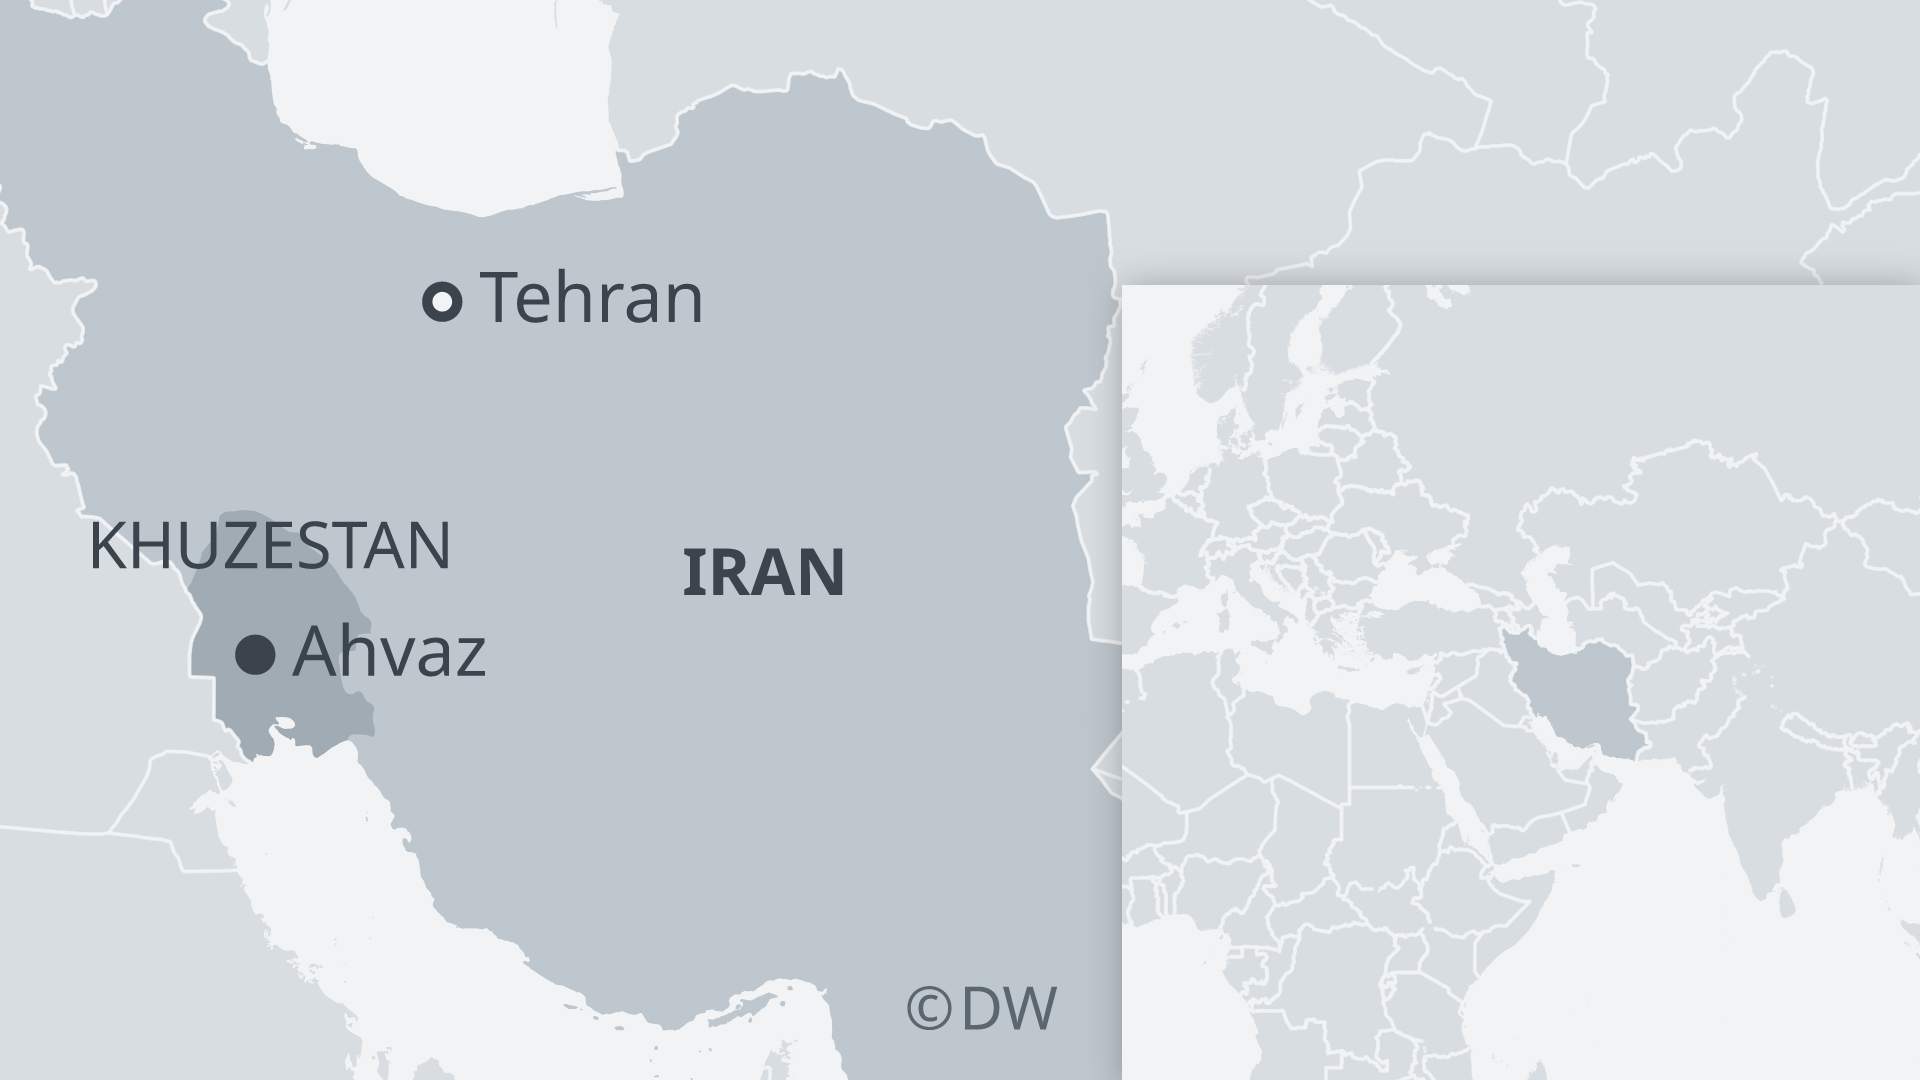 Map of Iran showing Tehran, Ahvaz and Khuzestan